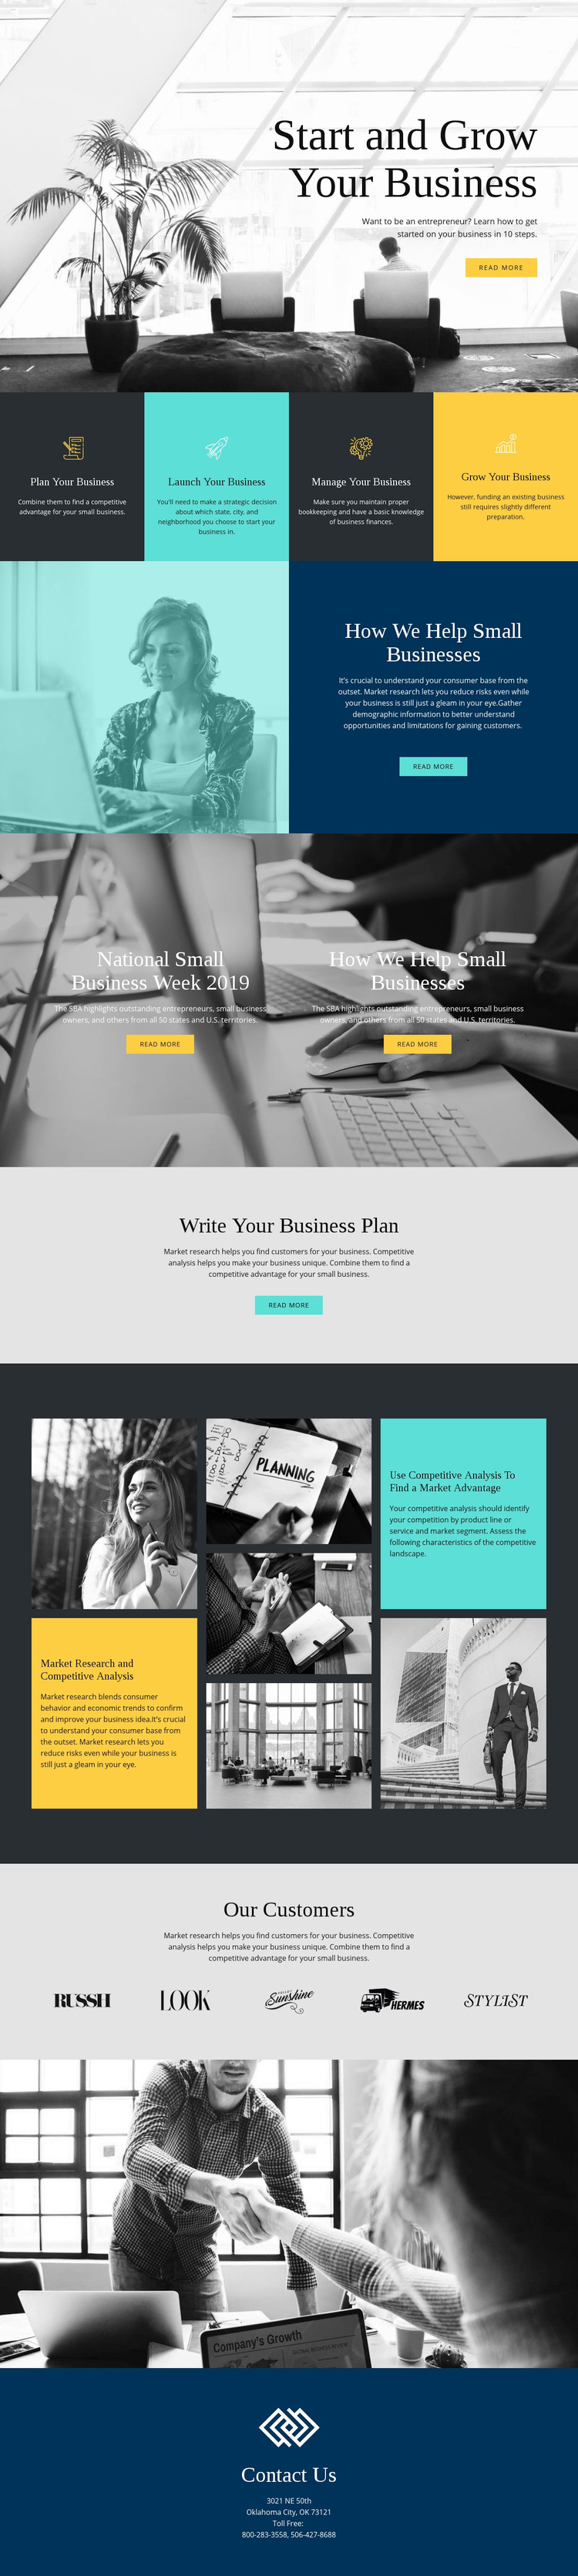 Start and grow your business WordPress Website